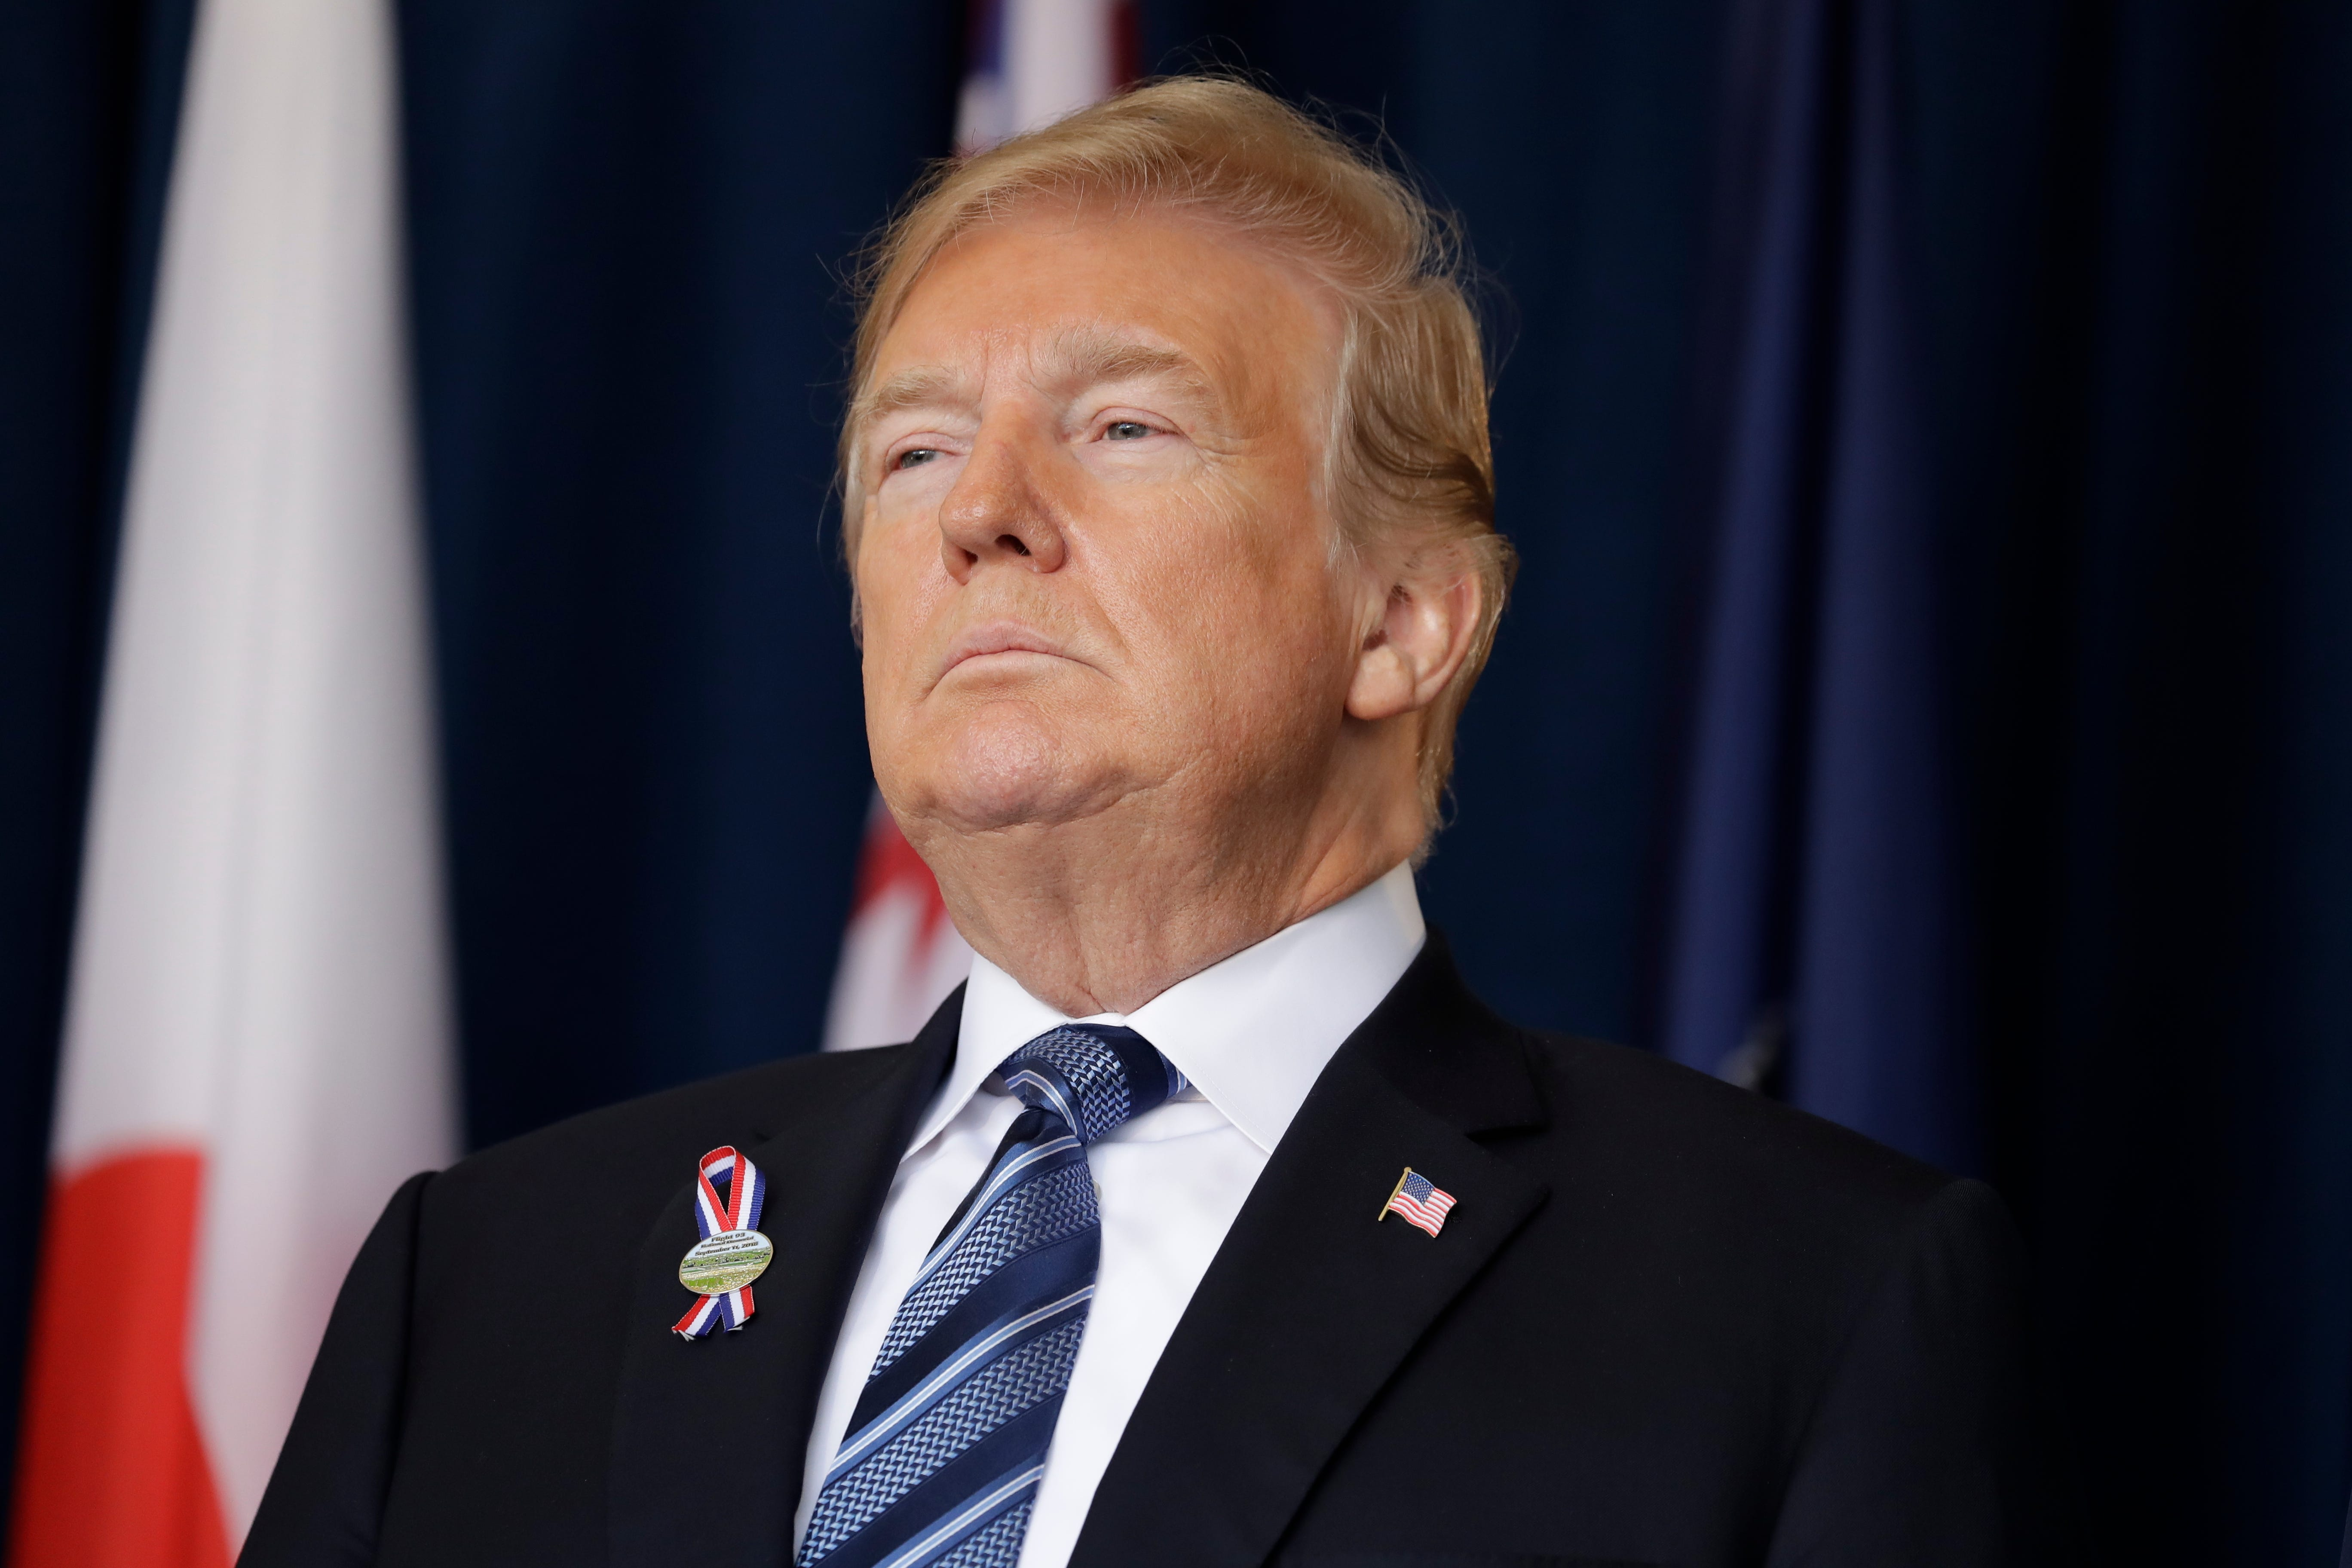 President Donald Trump participates in the September 11th Flight 93 Memorial Service, Sept. 11, 2018, in Shanksville, Pa.